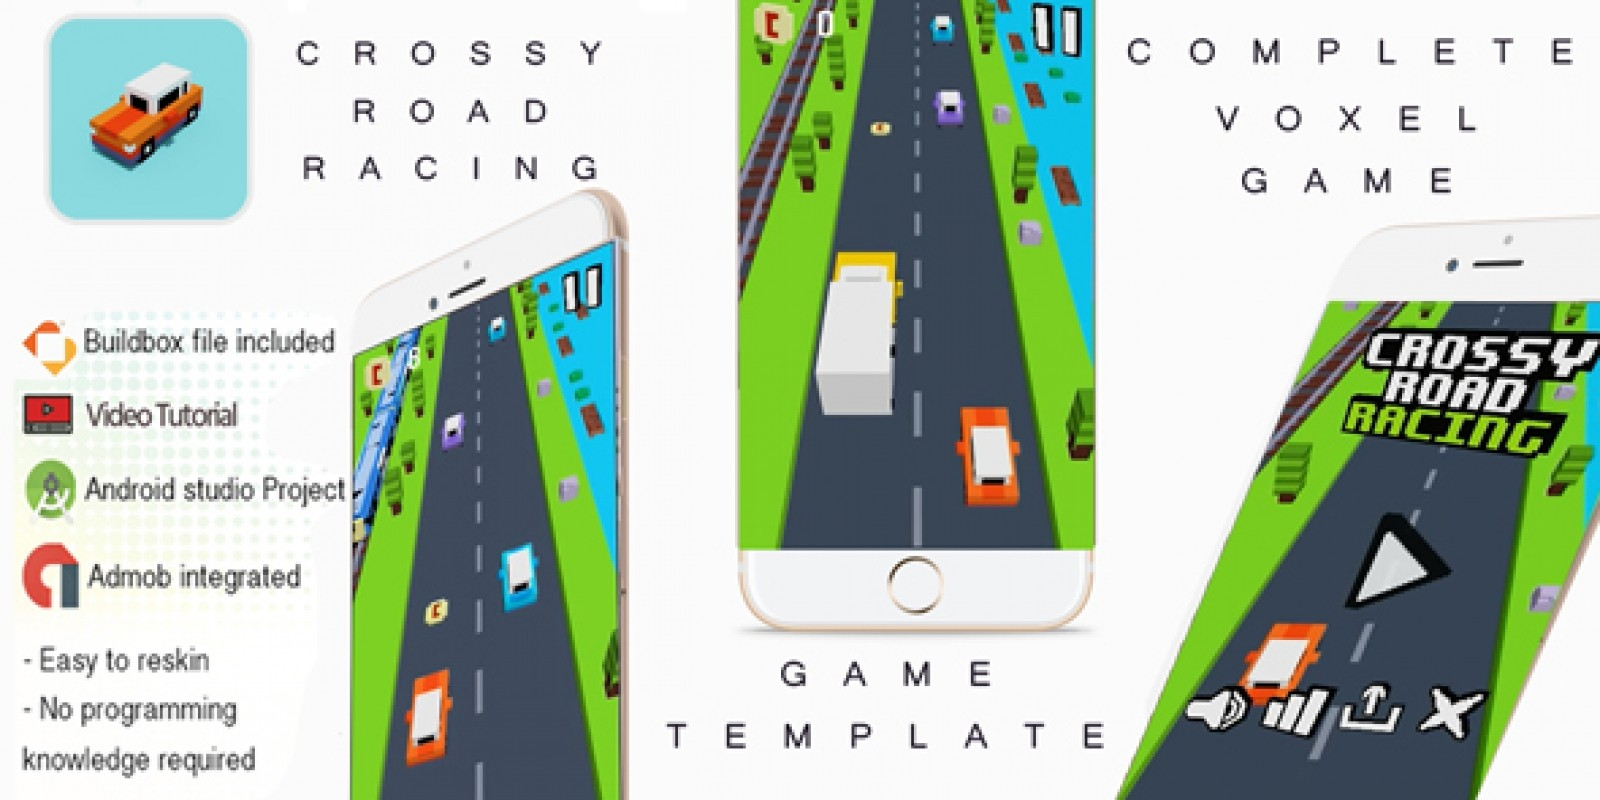 Crossy Road Racing Buildbox 3 Template With Admob